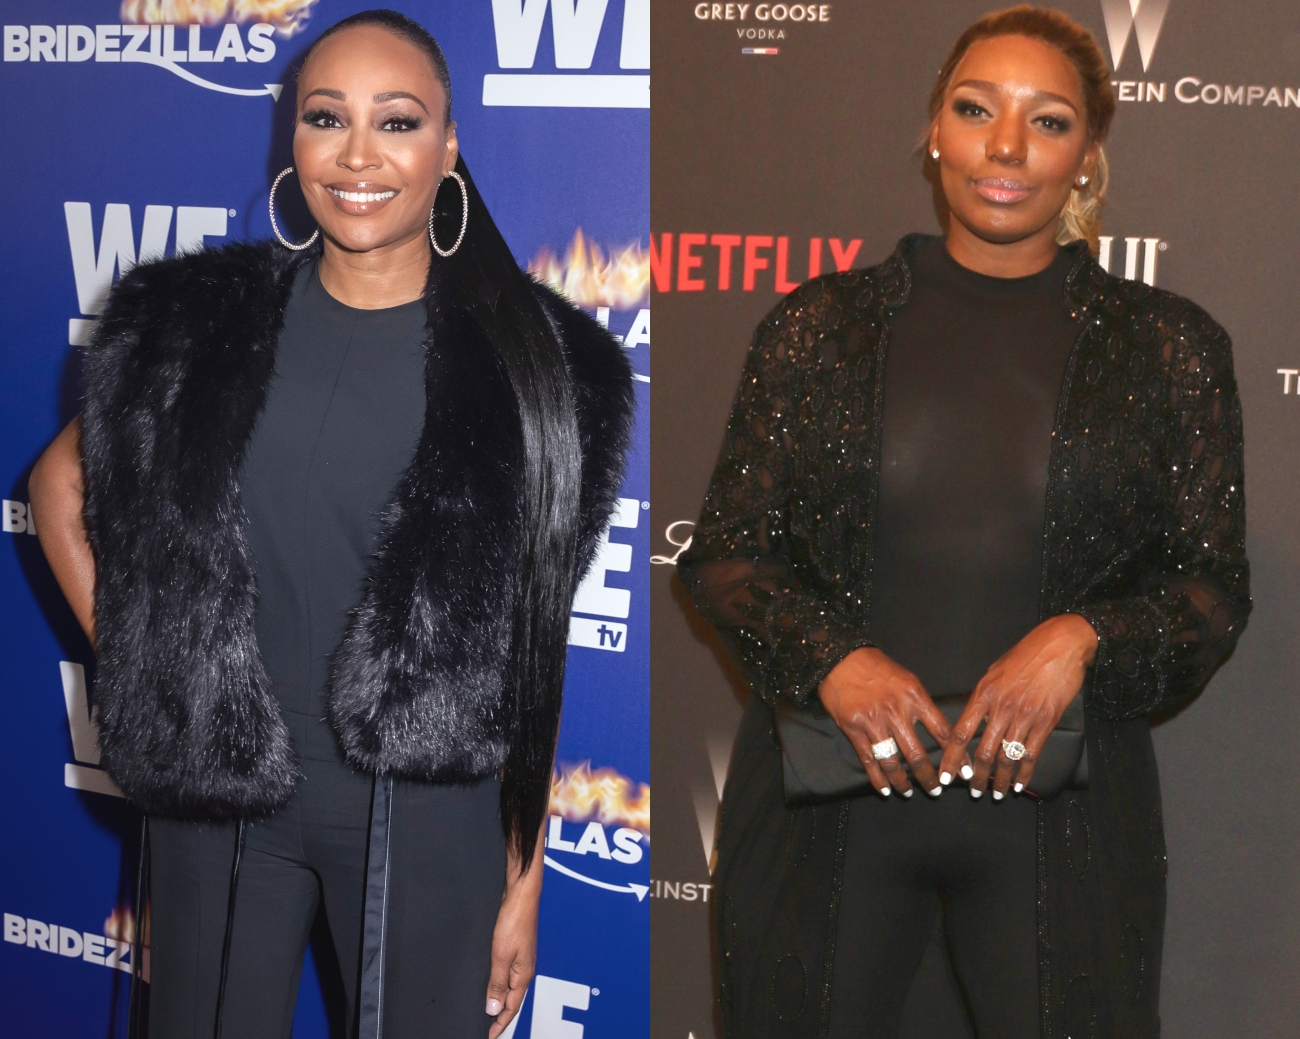 Cynthia Bailey Reveals the Real Reason NeNe Leakes Had Meltdown at RHOA Reunion